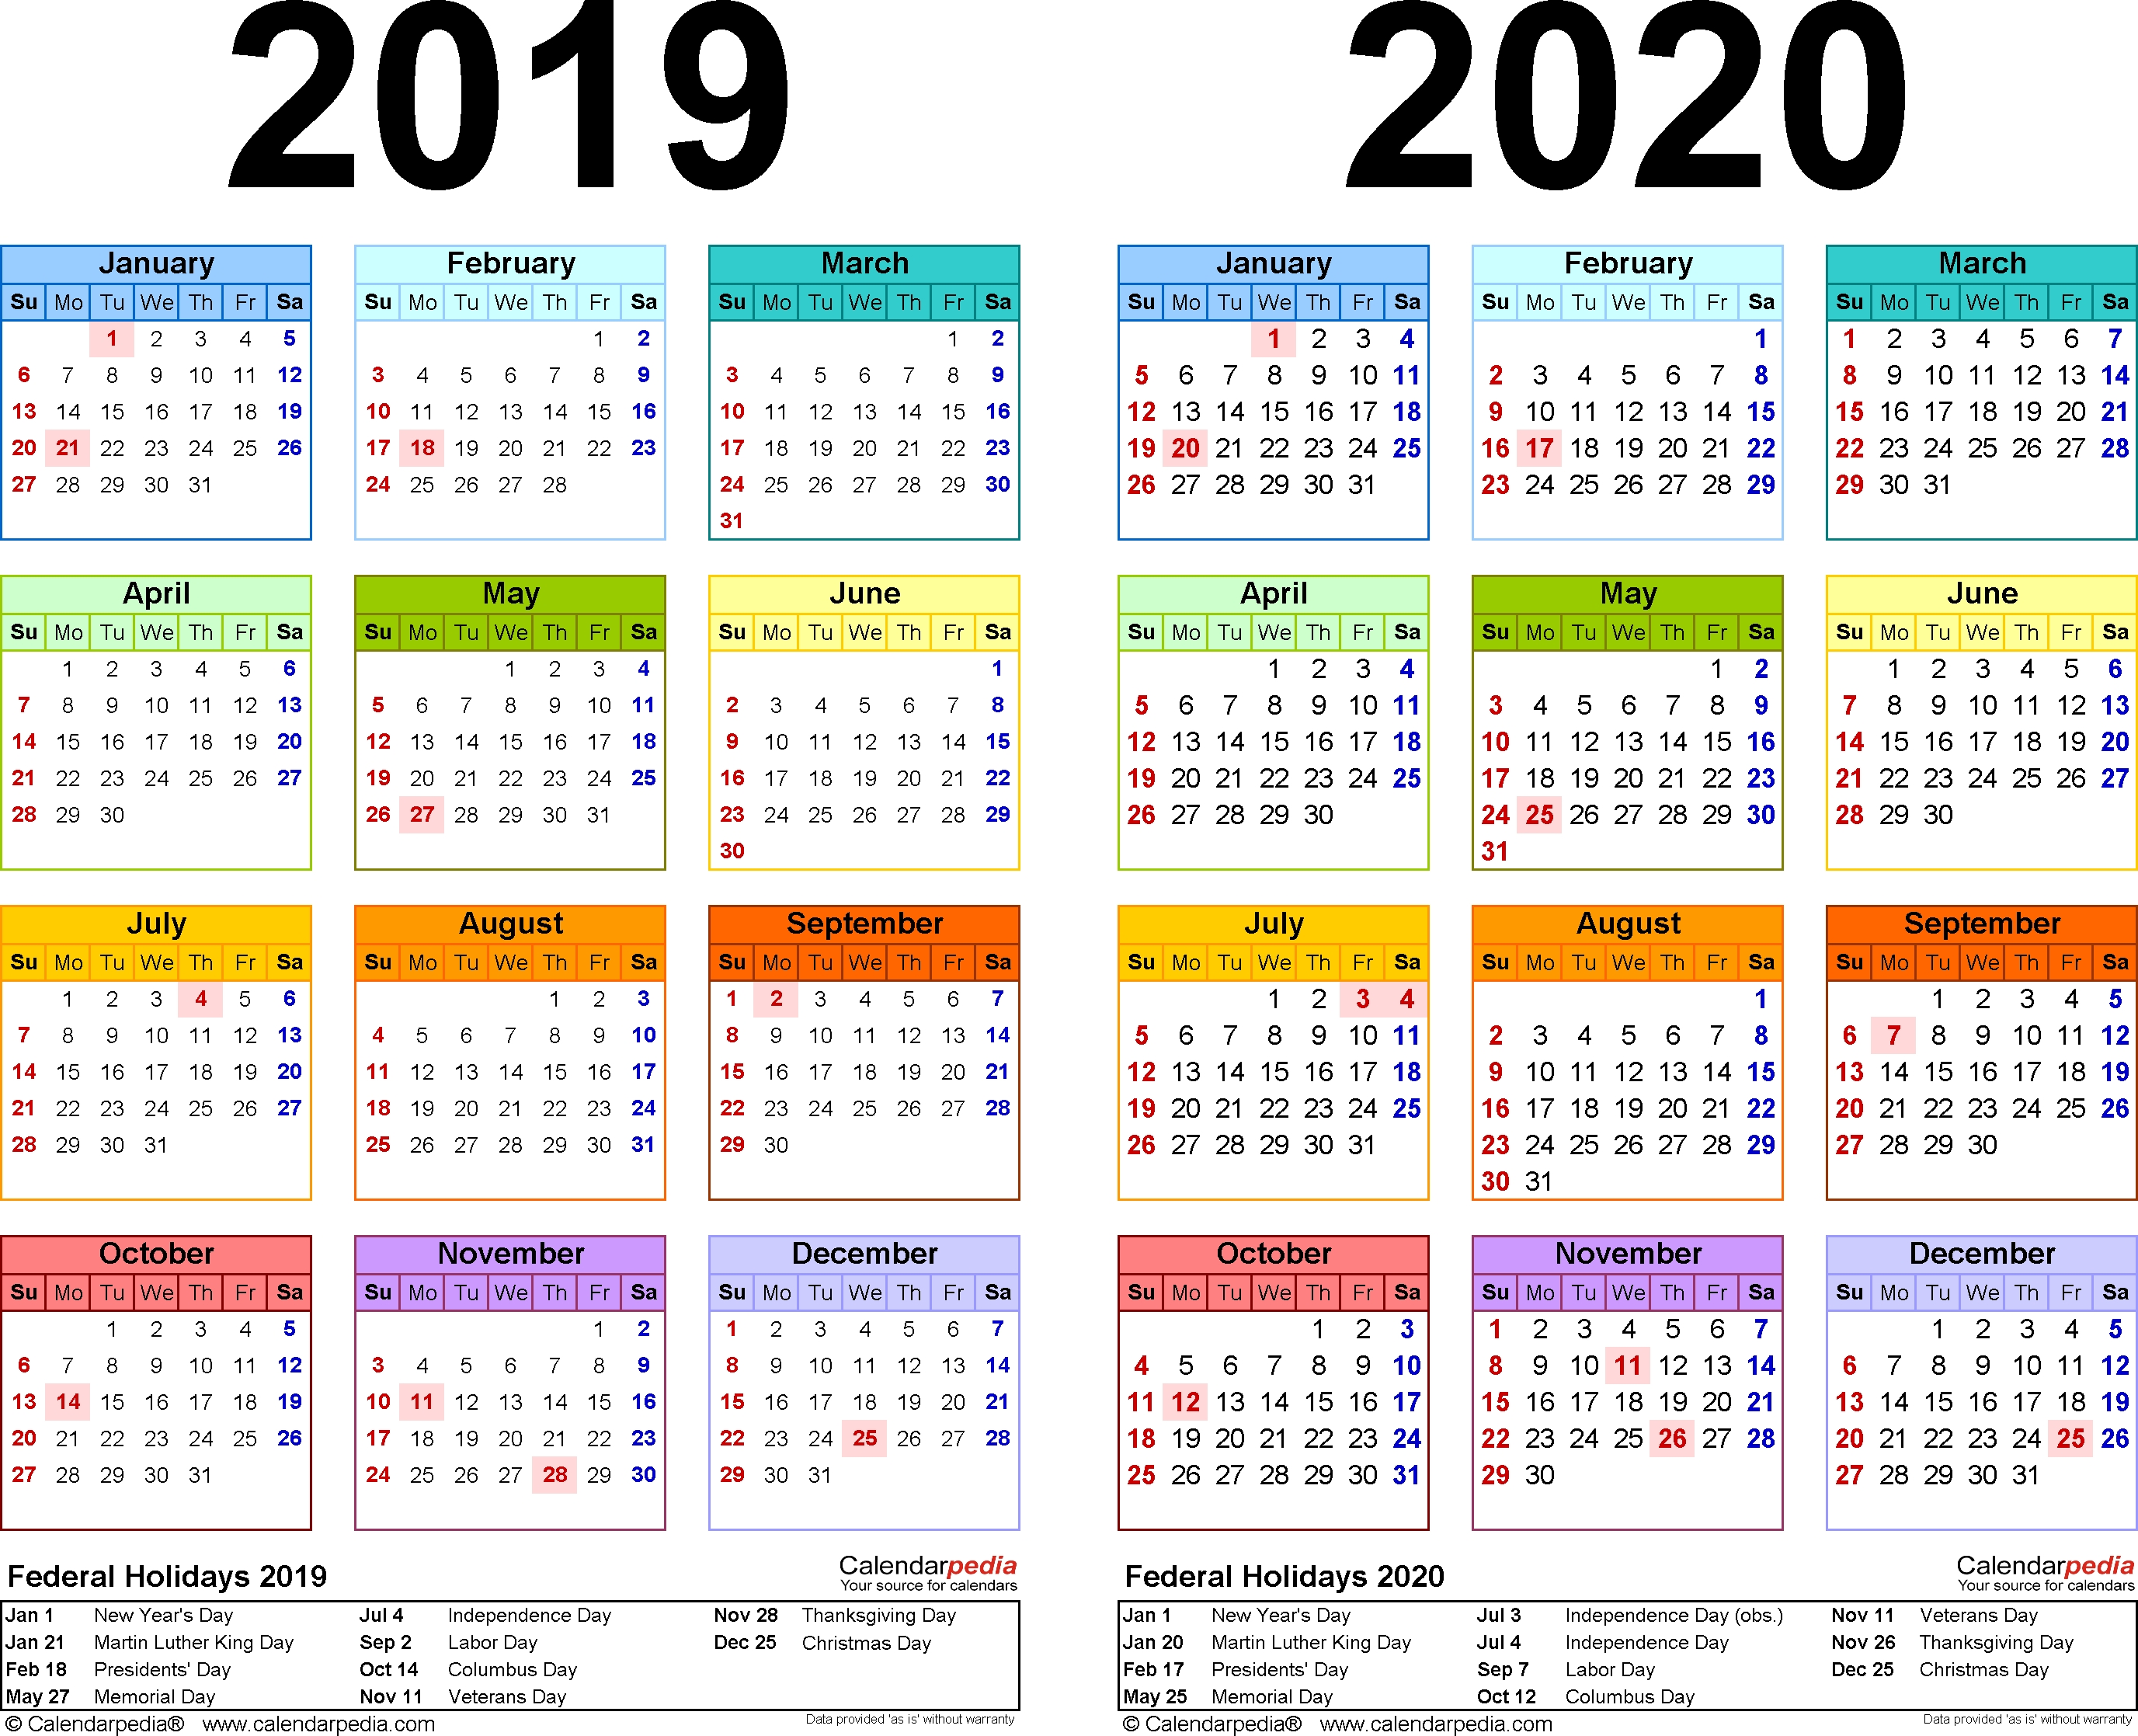 2019-2020 Calendar - Free Printable Two-Year Pdf Calendars intended for 2019/2020 Calendars Starting On Monday